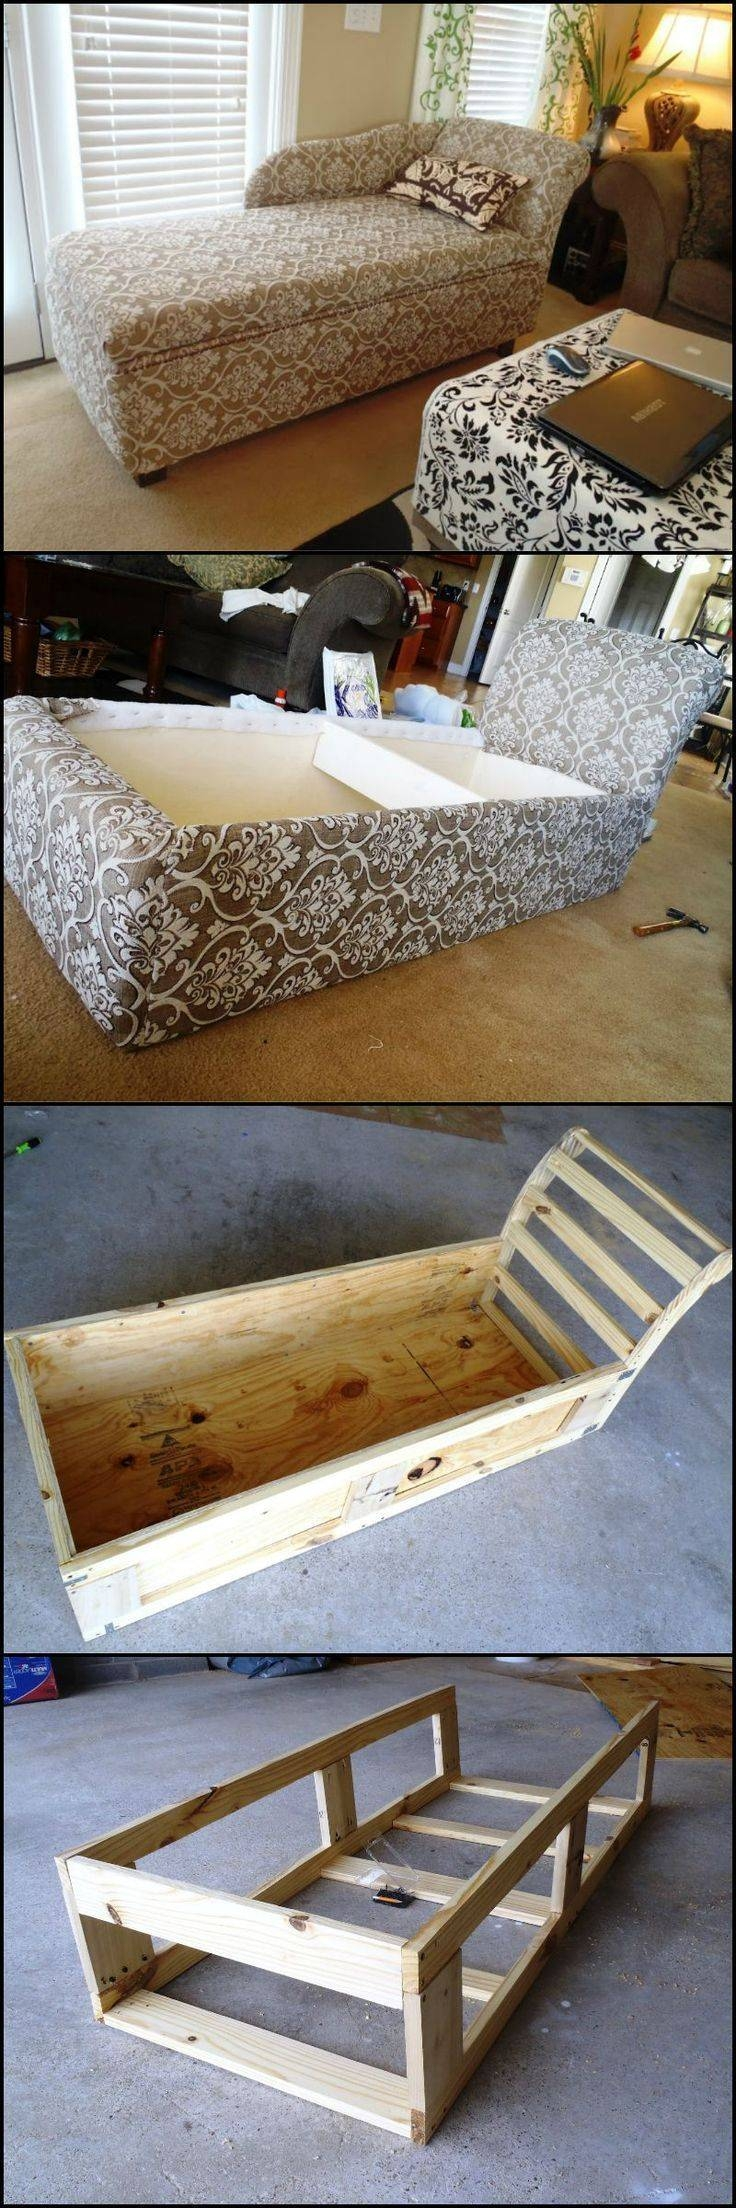 Top 25+ Best Build A Couch Ideas On Pinterest | Outdoor Furniture with Diy Sofa Frame (Image 28 of 30)